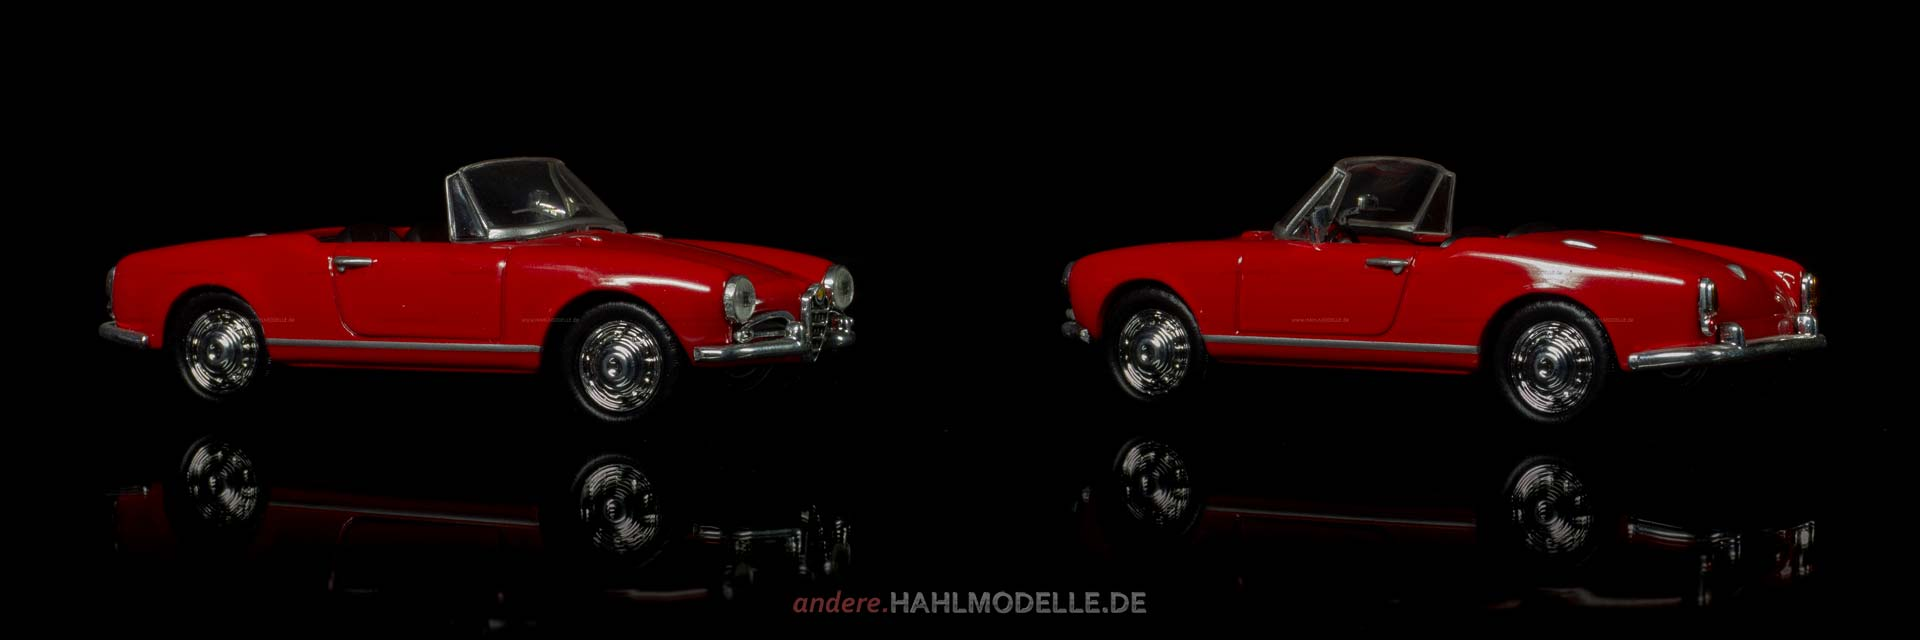 Alfa Romeo Giulietta (750/101) Spider | Roadster | Ixo (Del Prado Car Collection) | 1:43 | www.andere.hahlmodelle.de